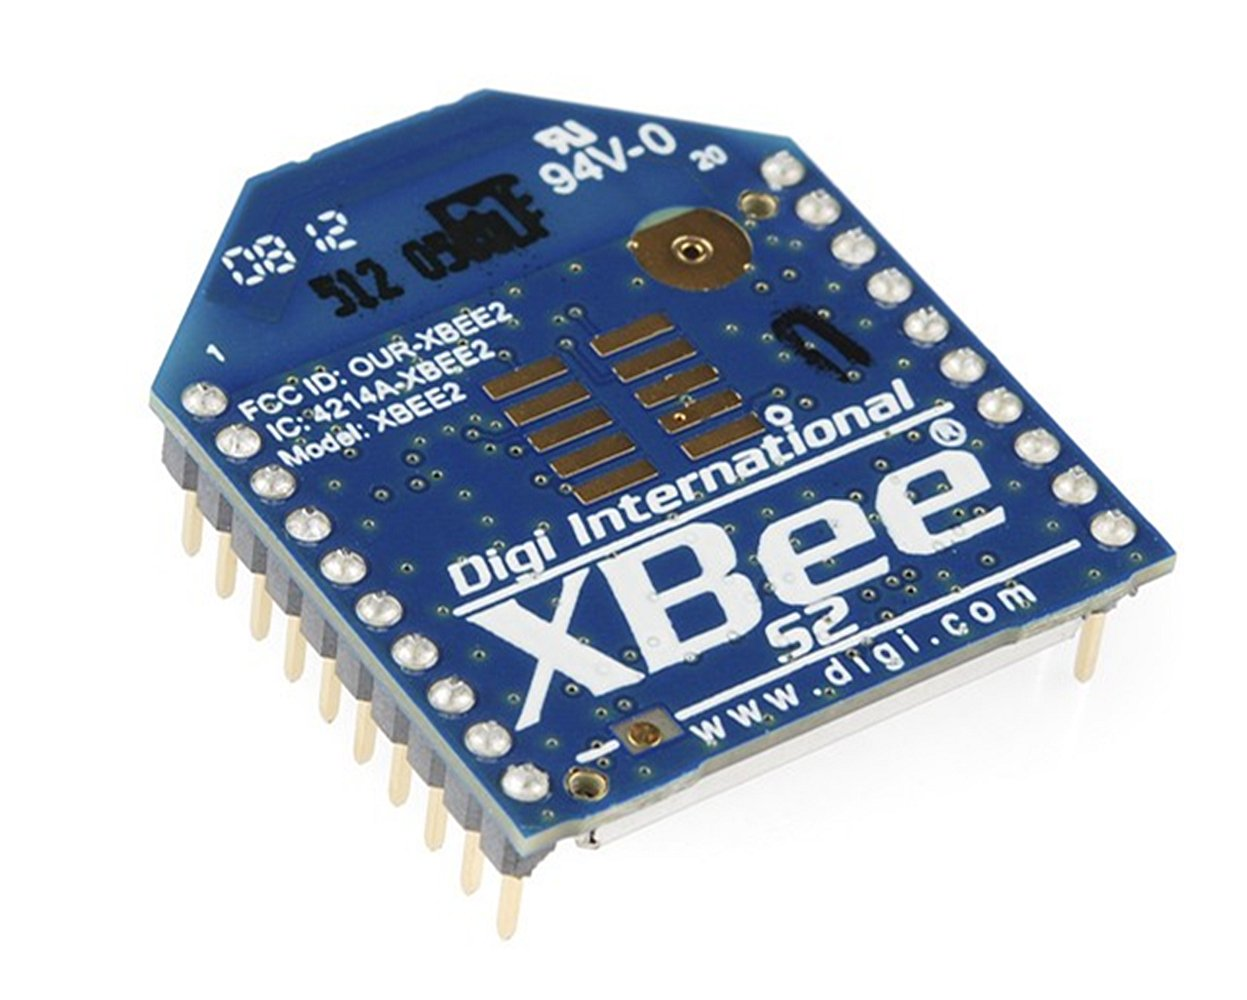 Xbee 2mw PCB Antenna - Series 2 (Zigbee Mesh)/Xbee Also Has A Chip Antenna Which Is Basically A Small Chip That Acts As An Antenna. Quick, Easy, Cheap, And Not In The Way by D&F